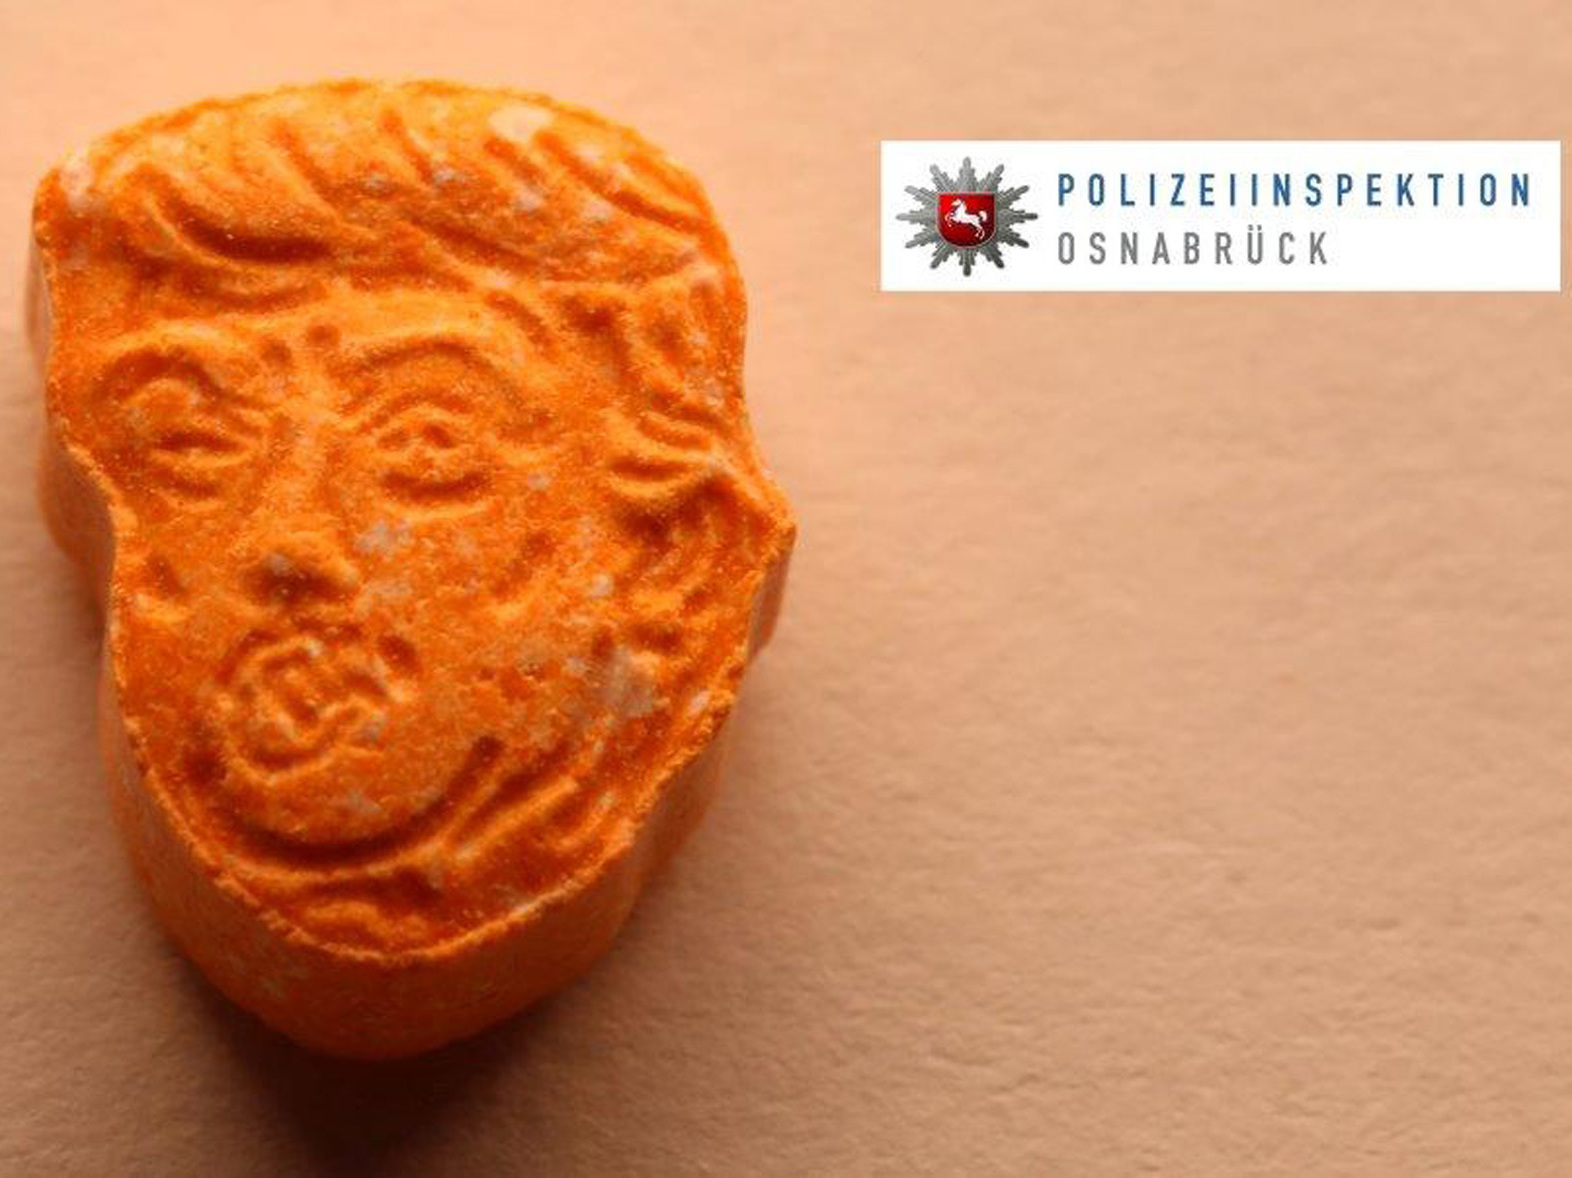 Ecsta-seized: 5000 Trump-shaped ecstasy pills seized in Germany